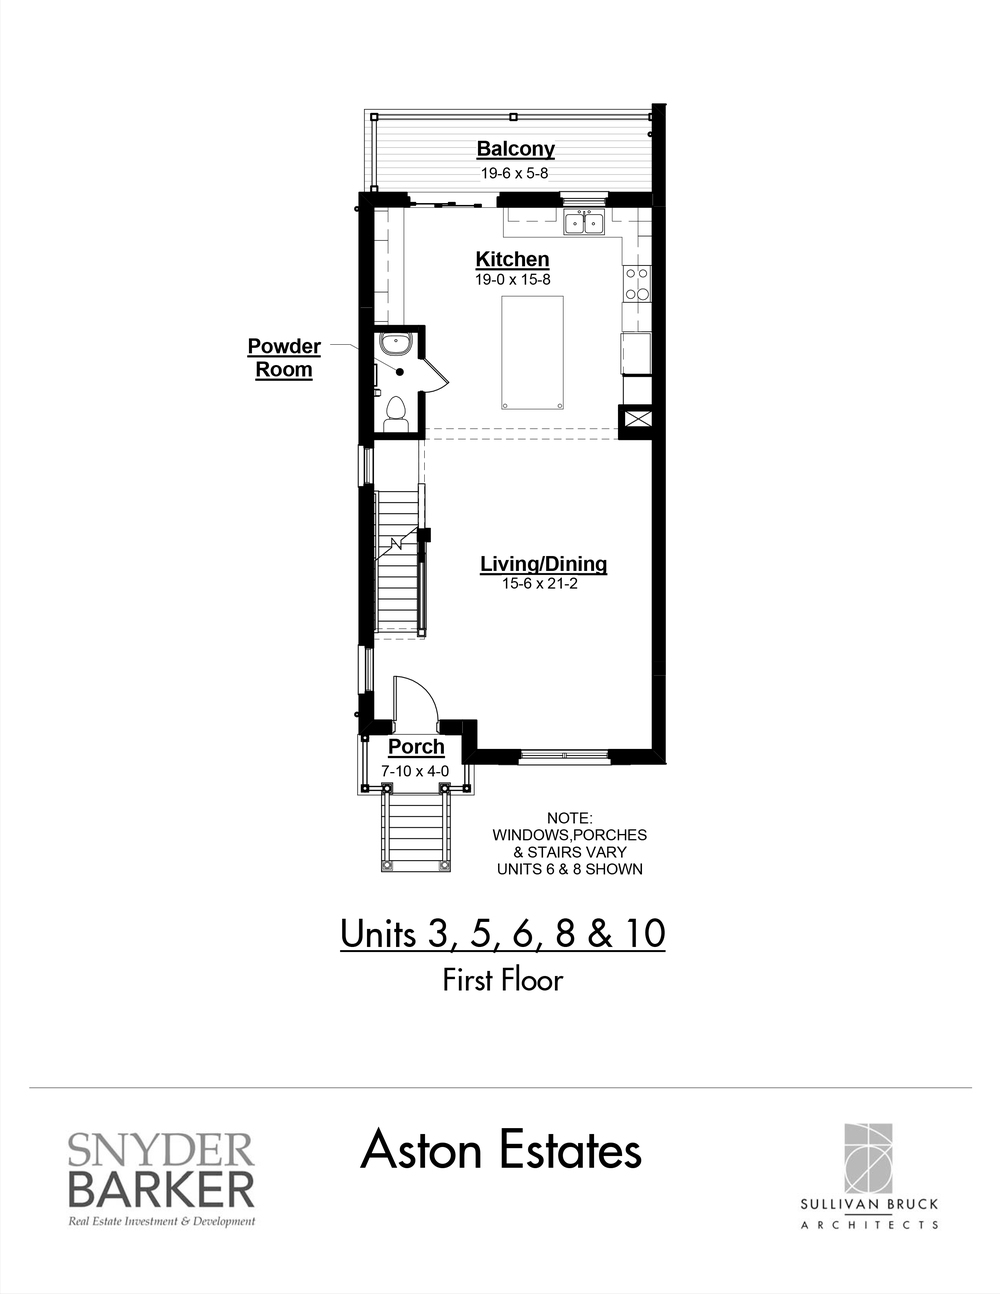 Aston_Estates_Unit_3_5_6_8_10_First_Floor.jpg